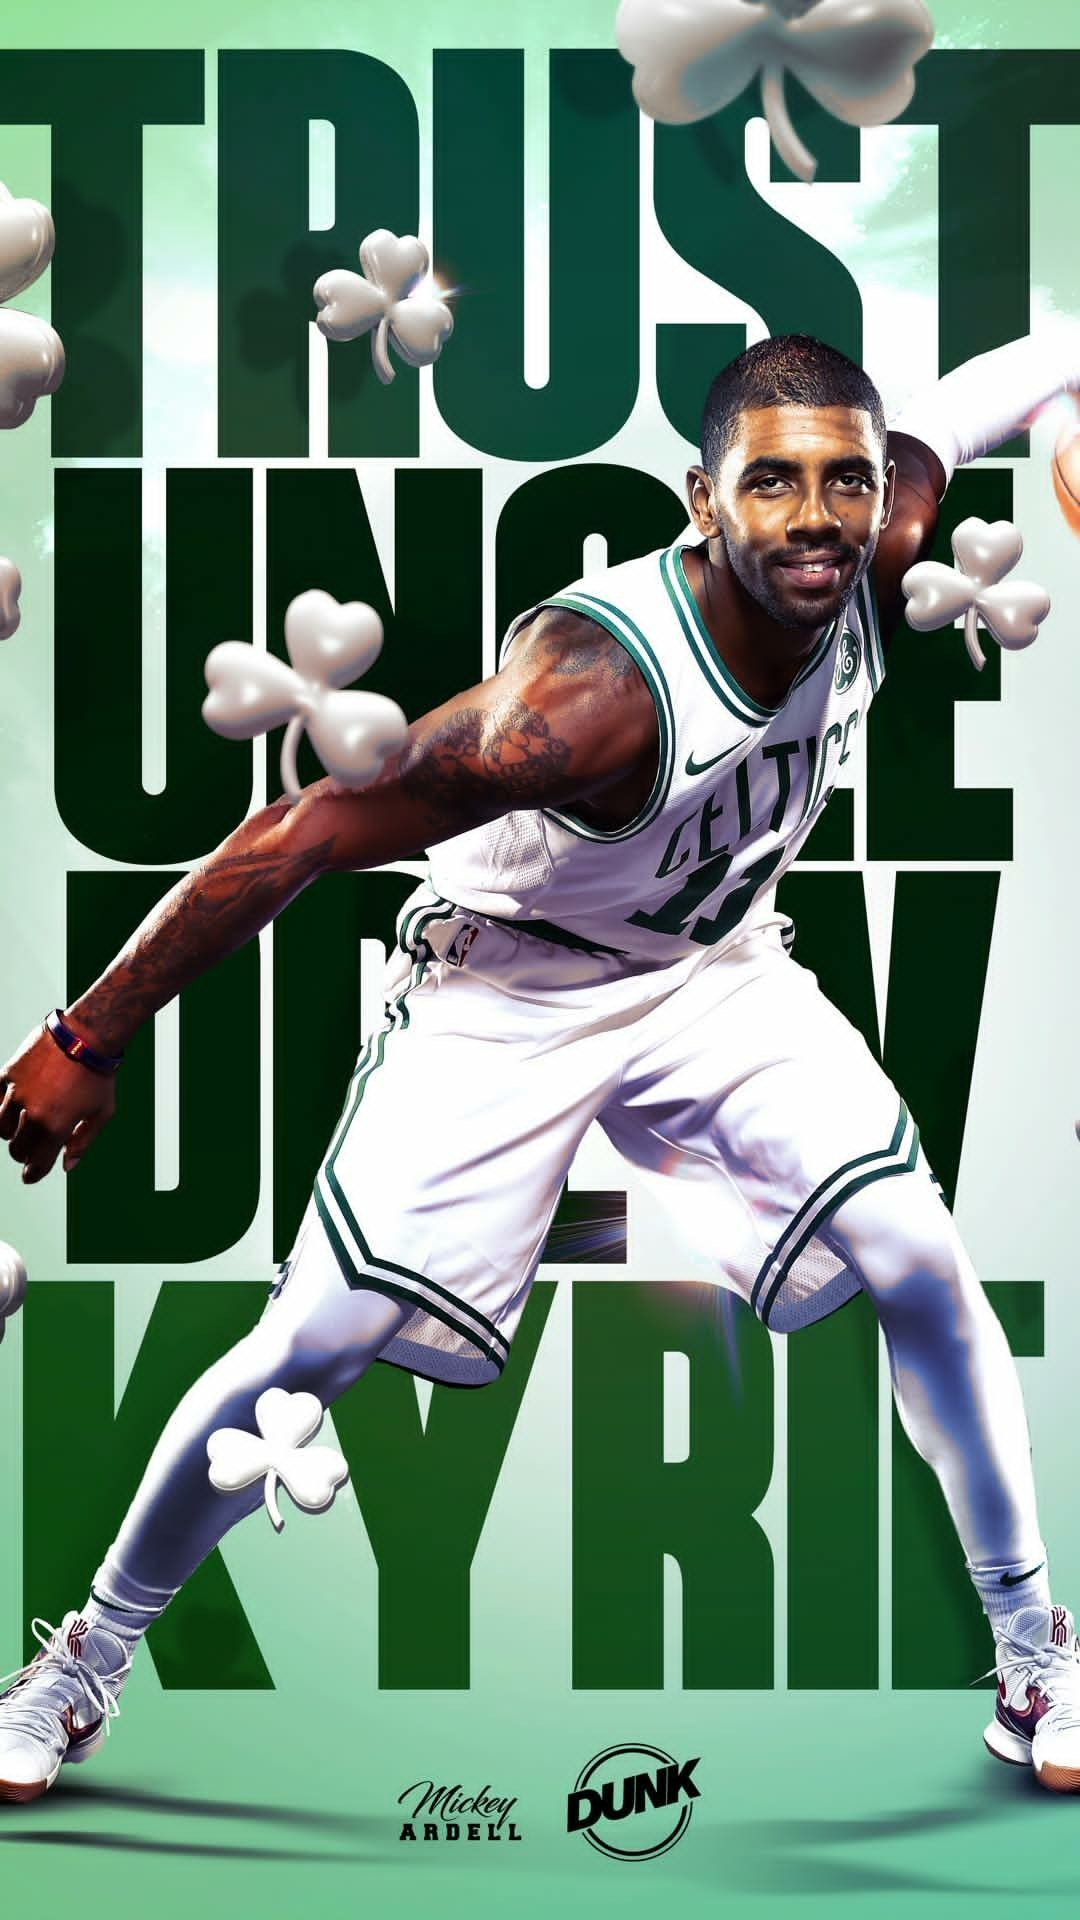 Kyrie Irving Wallpaper Irving Wallpapers Kyrie Irving Celtics Kyrie Irving